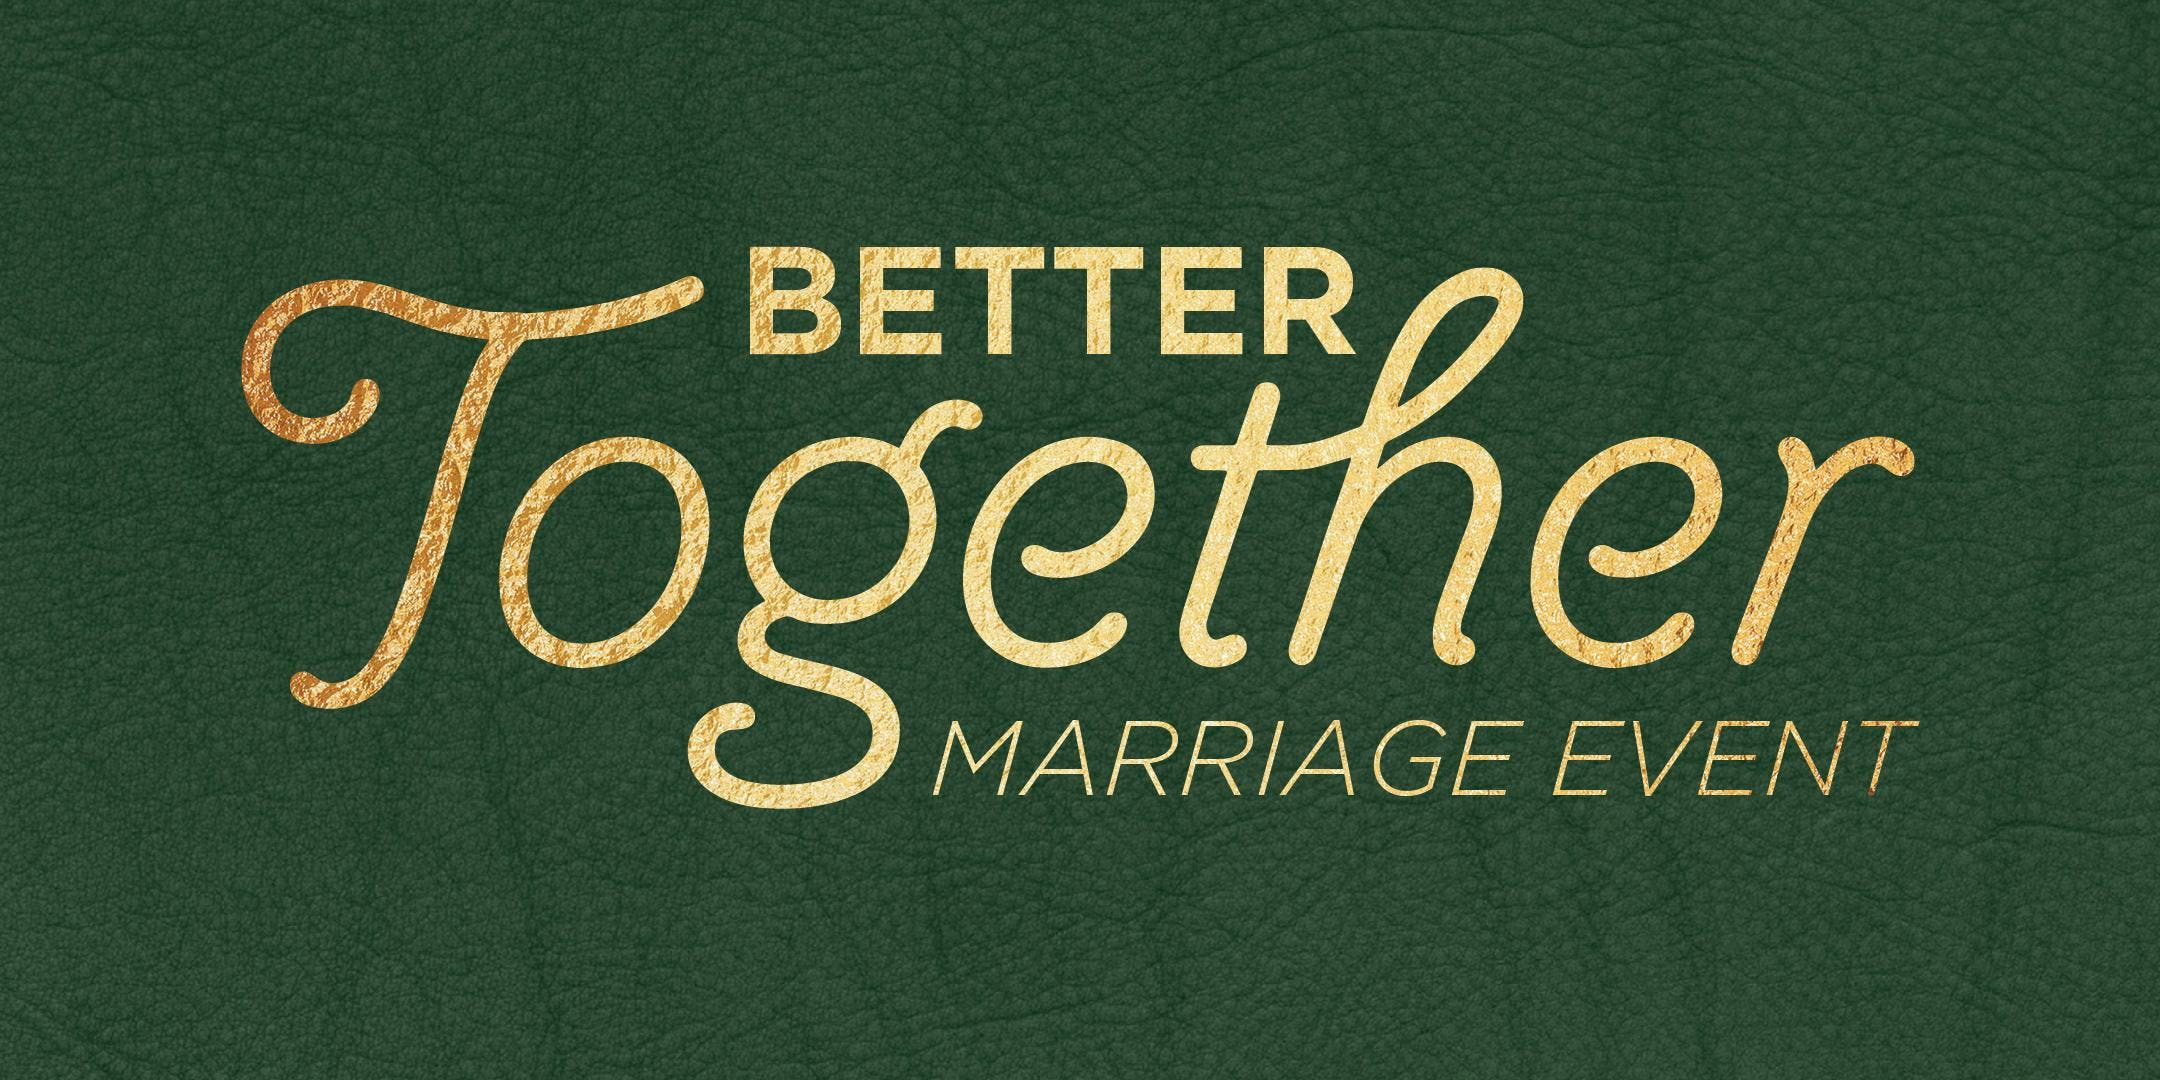 Better Together Marriage Event (Living Word Gilbert)